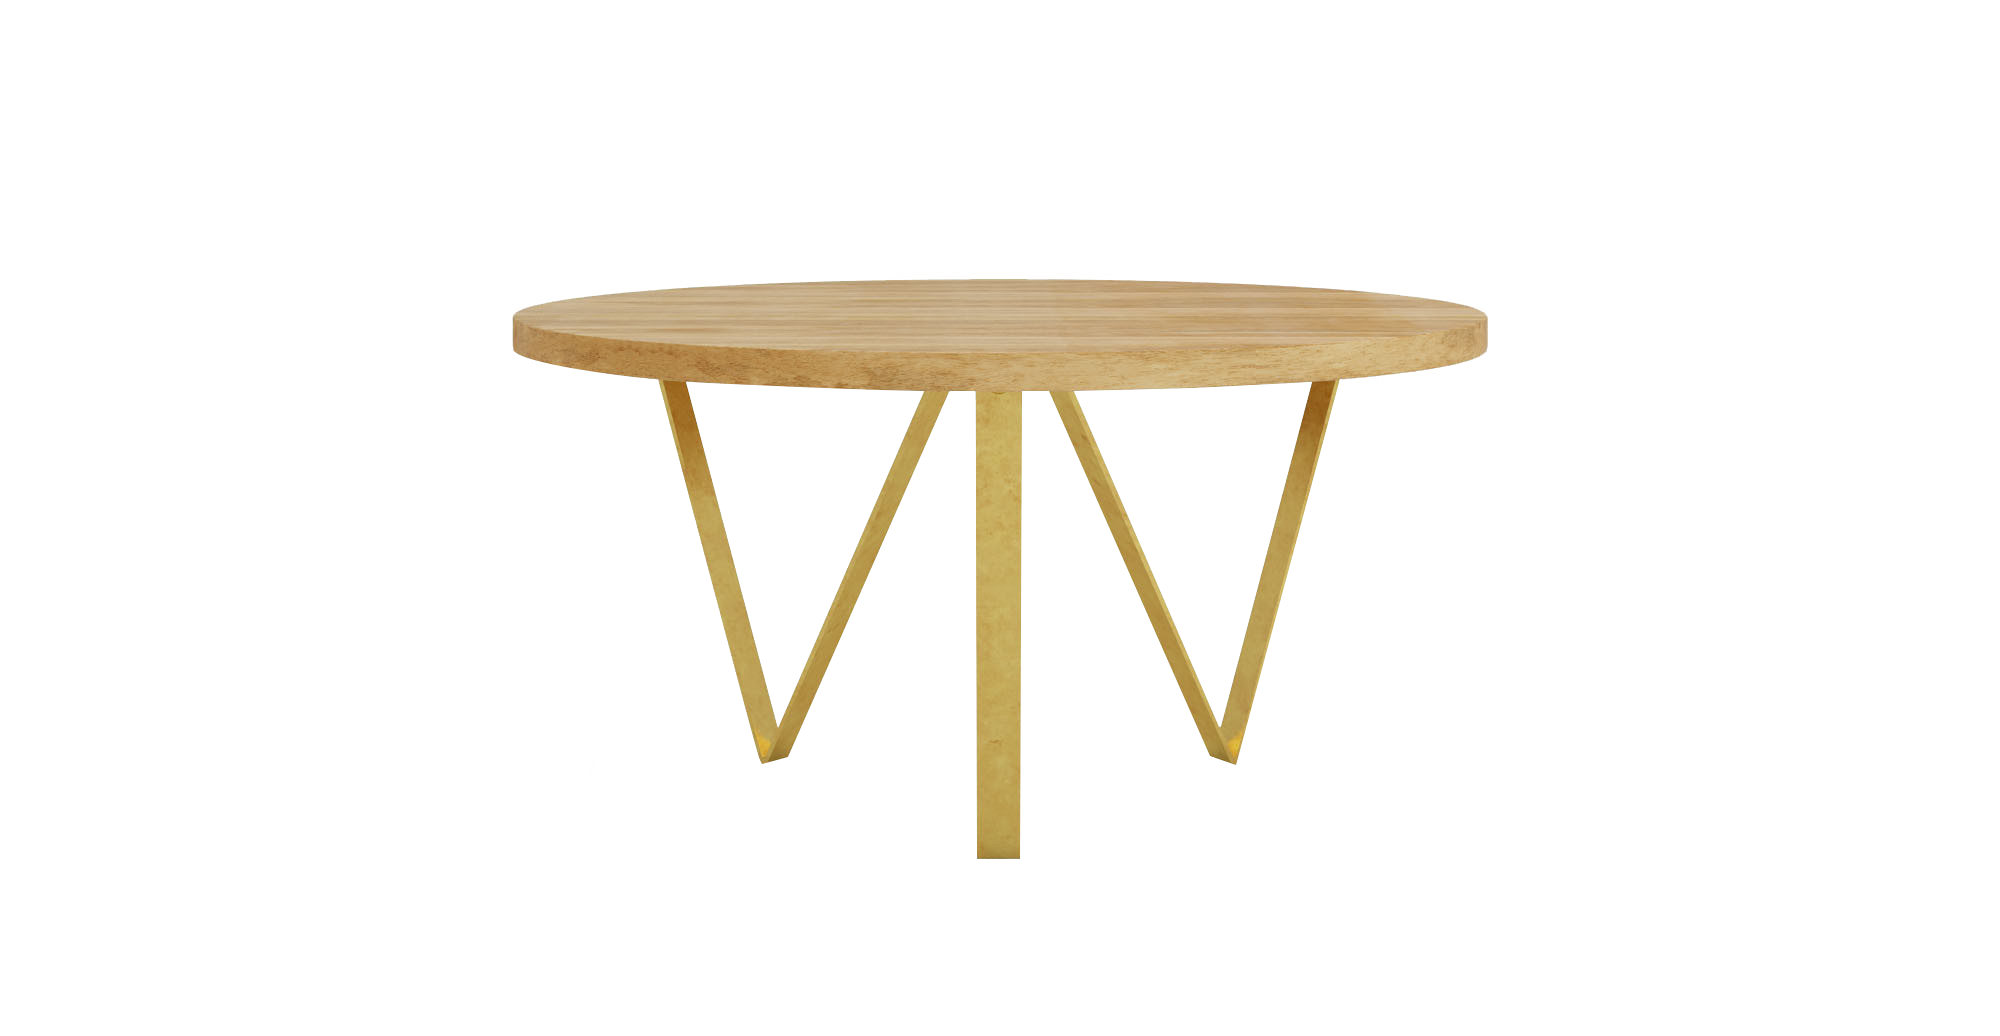 outdoor table png. outdoor table png